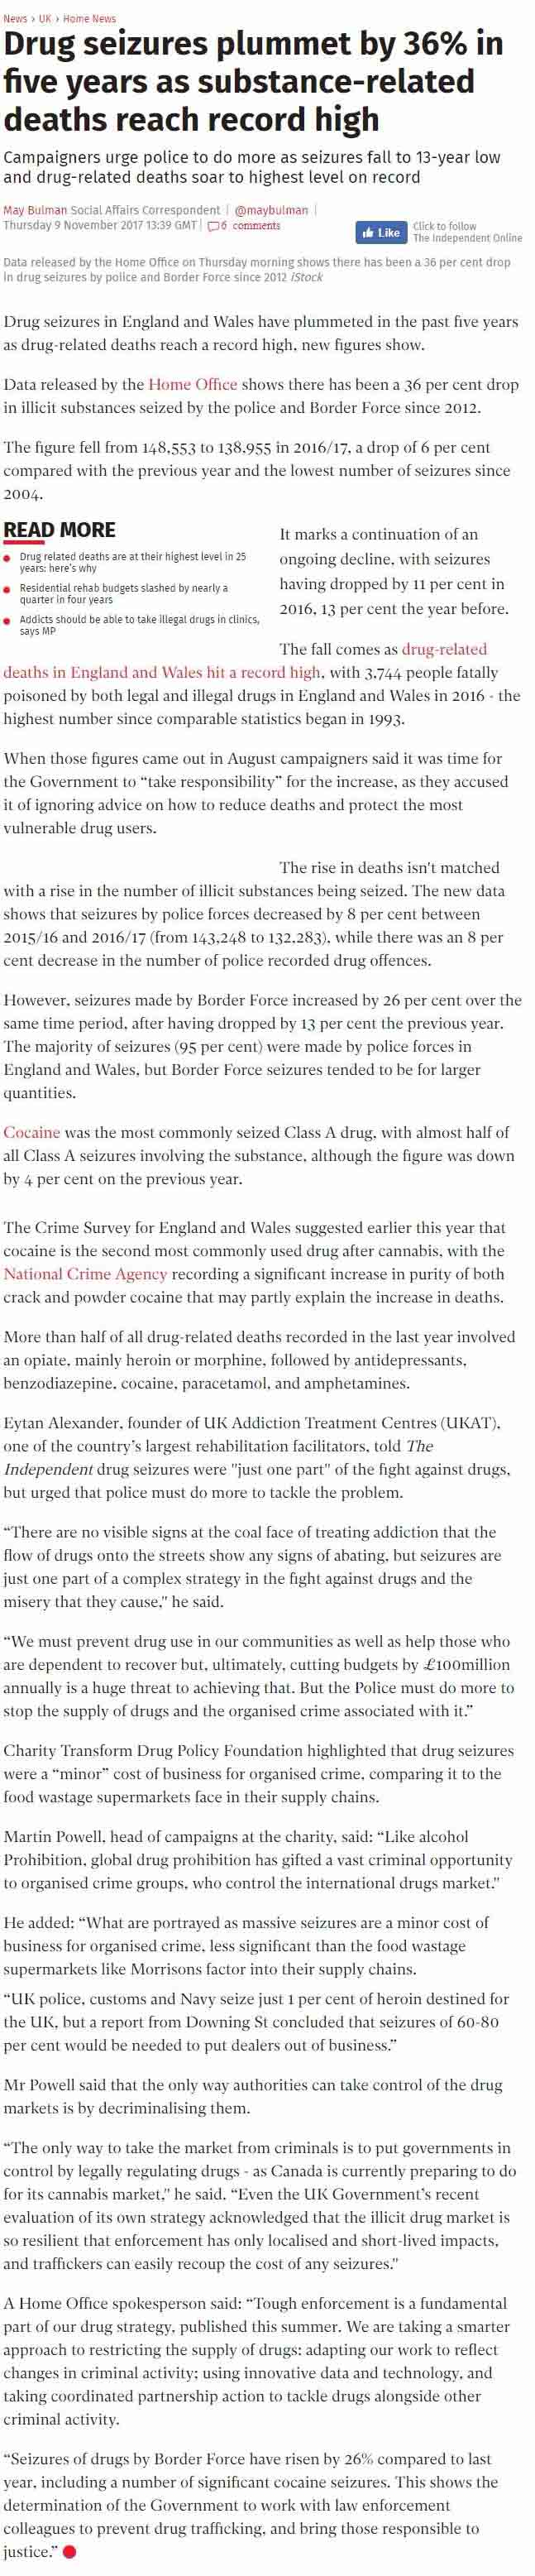 The Independent - We Must Prevent Drug Use in the Communities